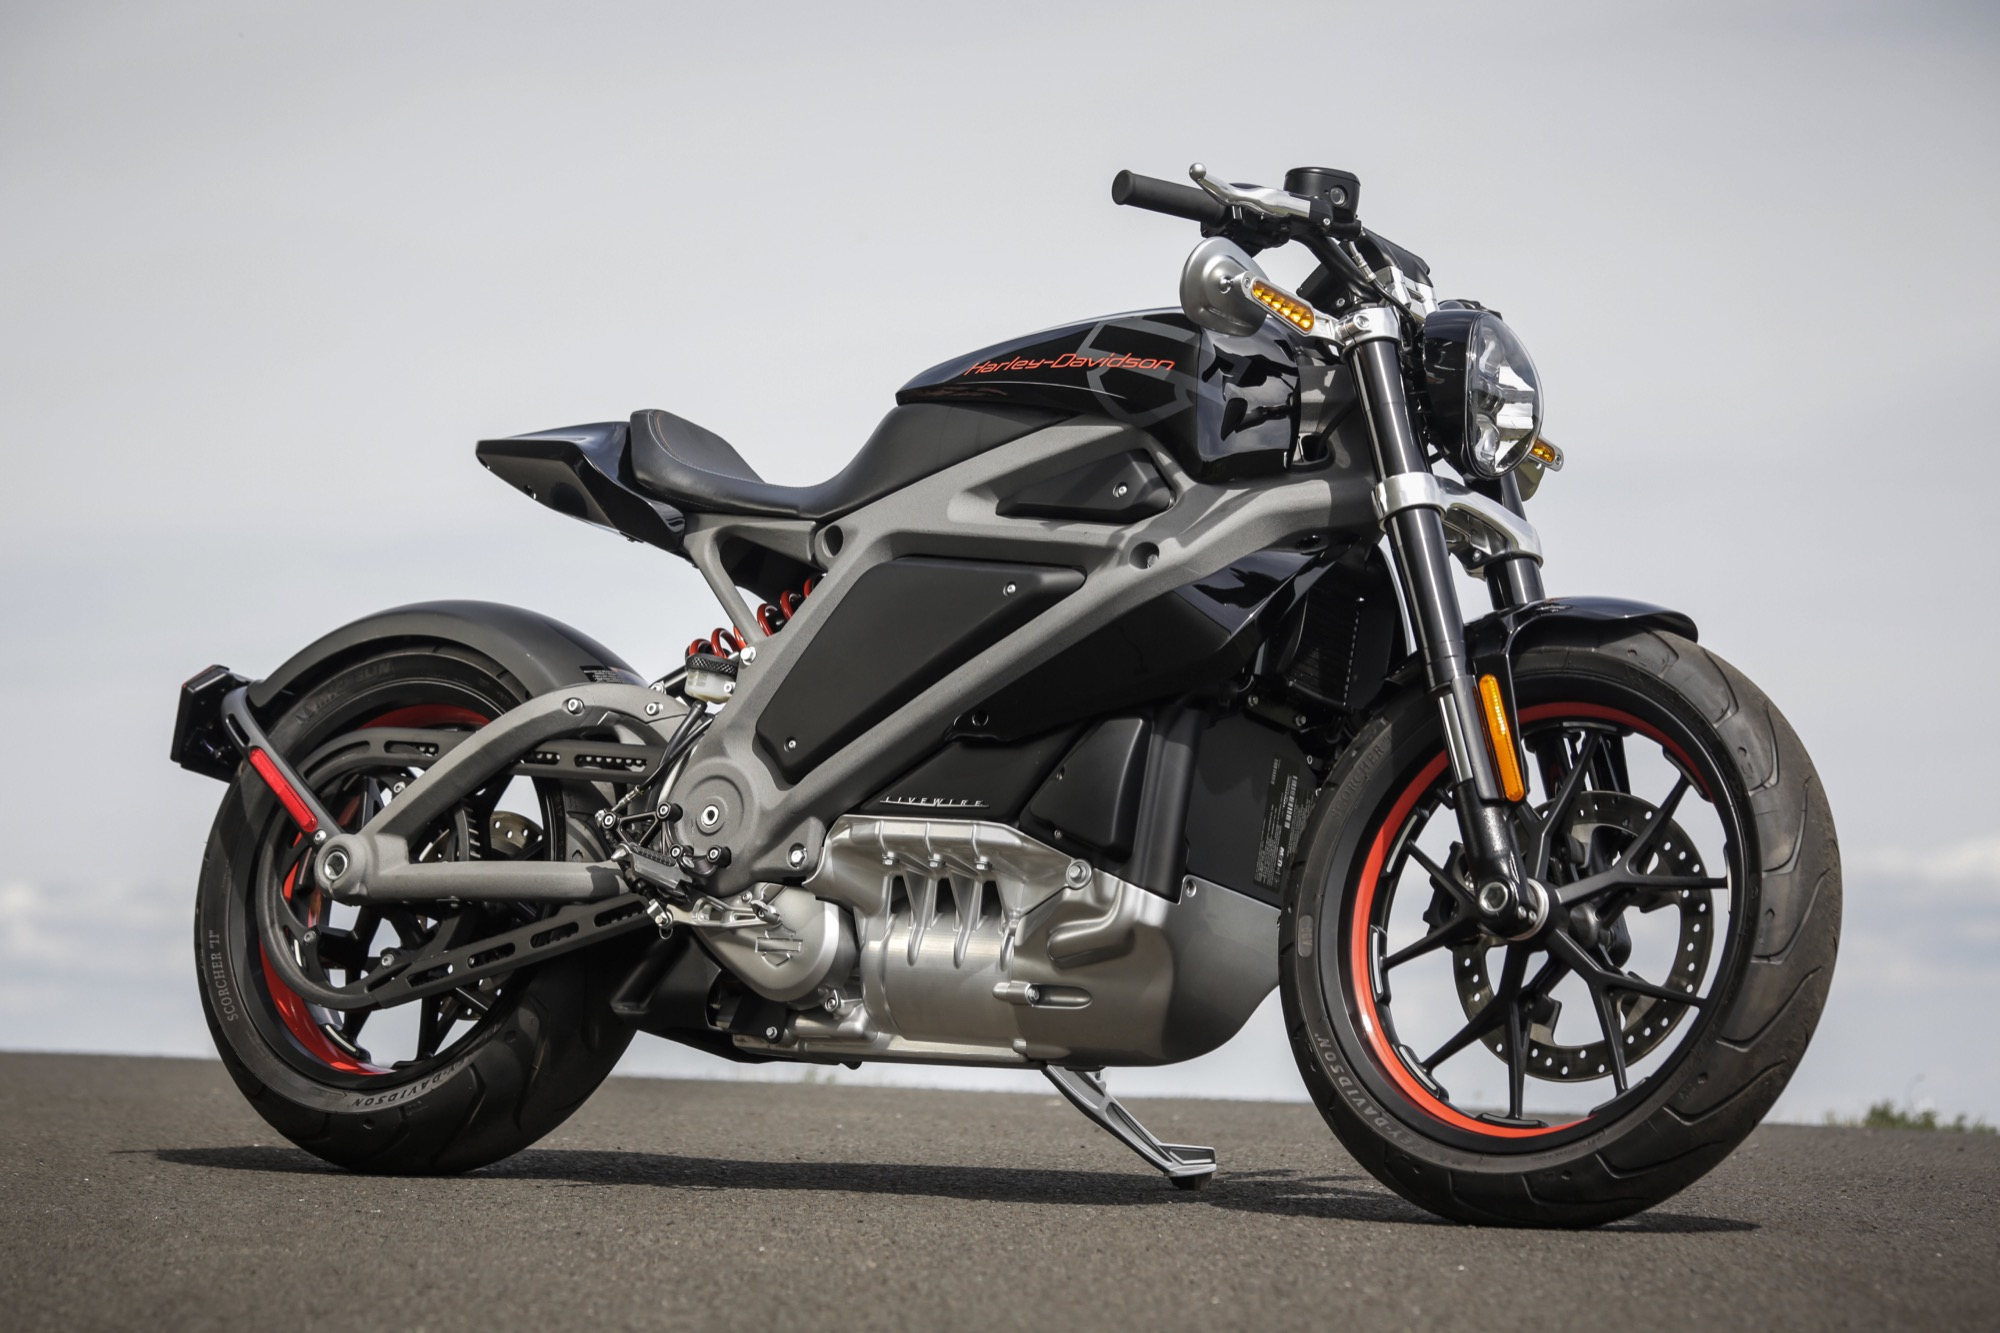 https://www.moto1pro.com/sites/default/files/harley-davidson-livewire.jpg